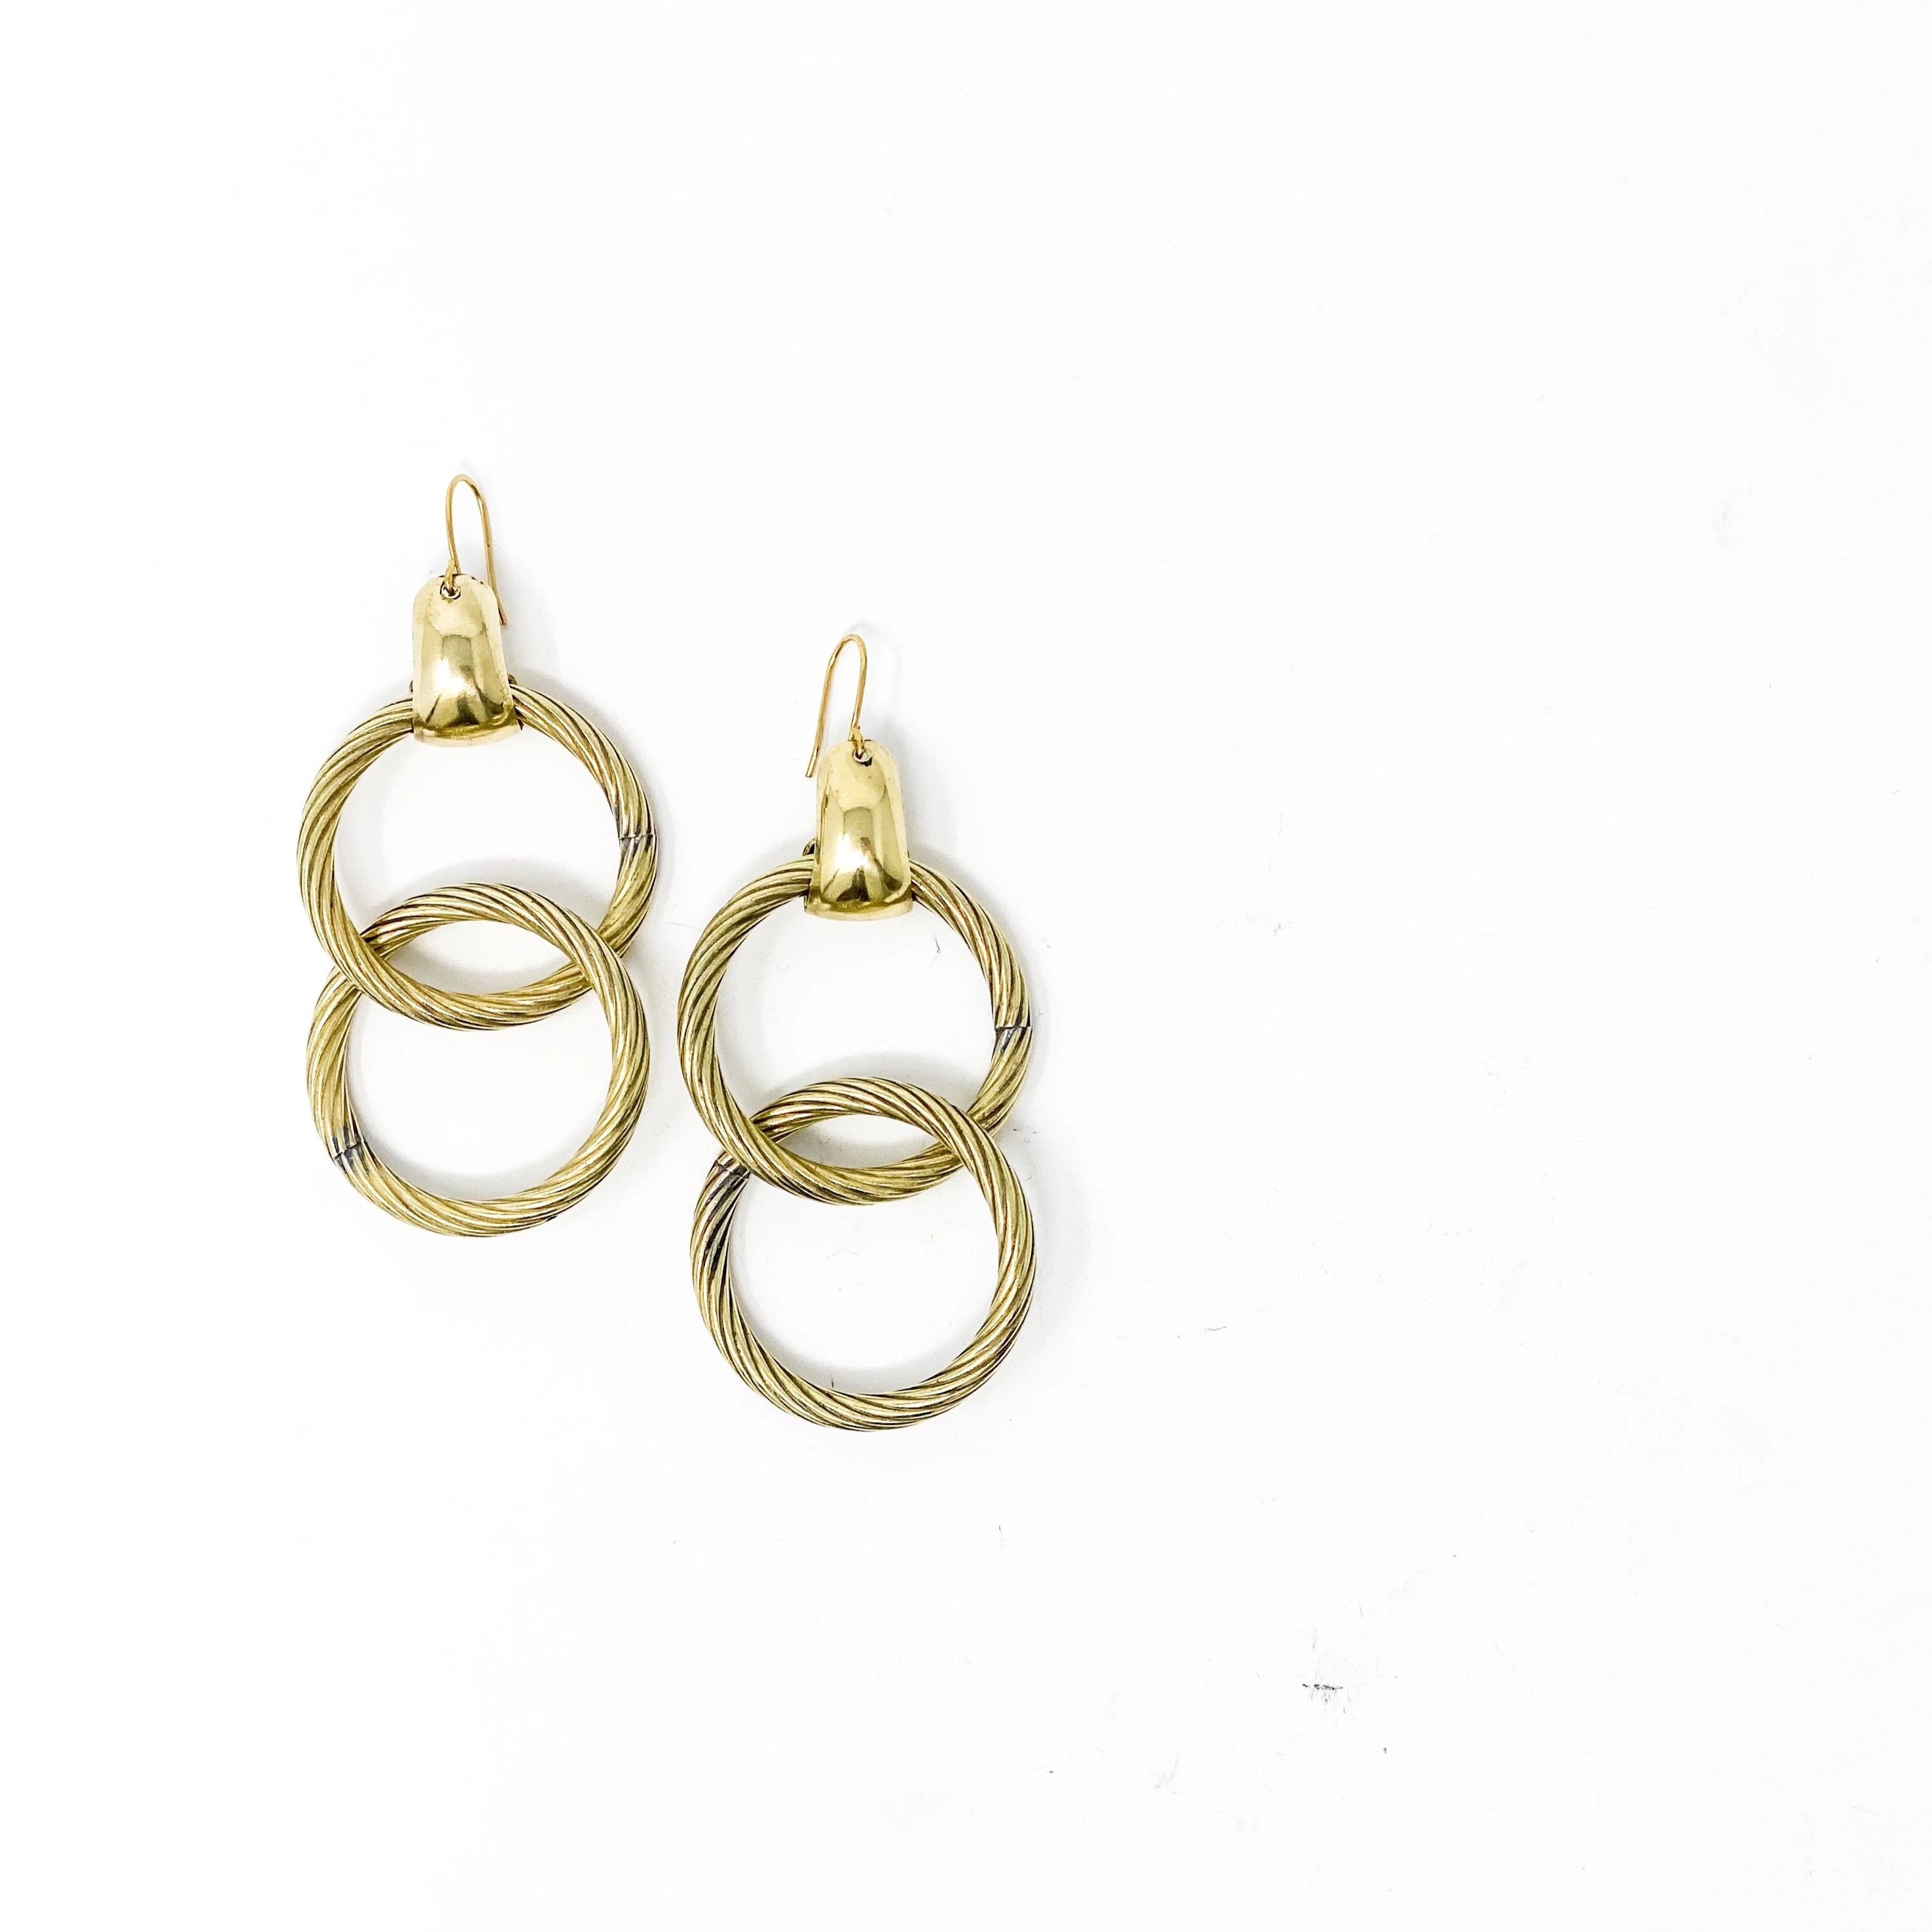 LOOPY Earrings - Twisted Silver Jewelry